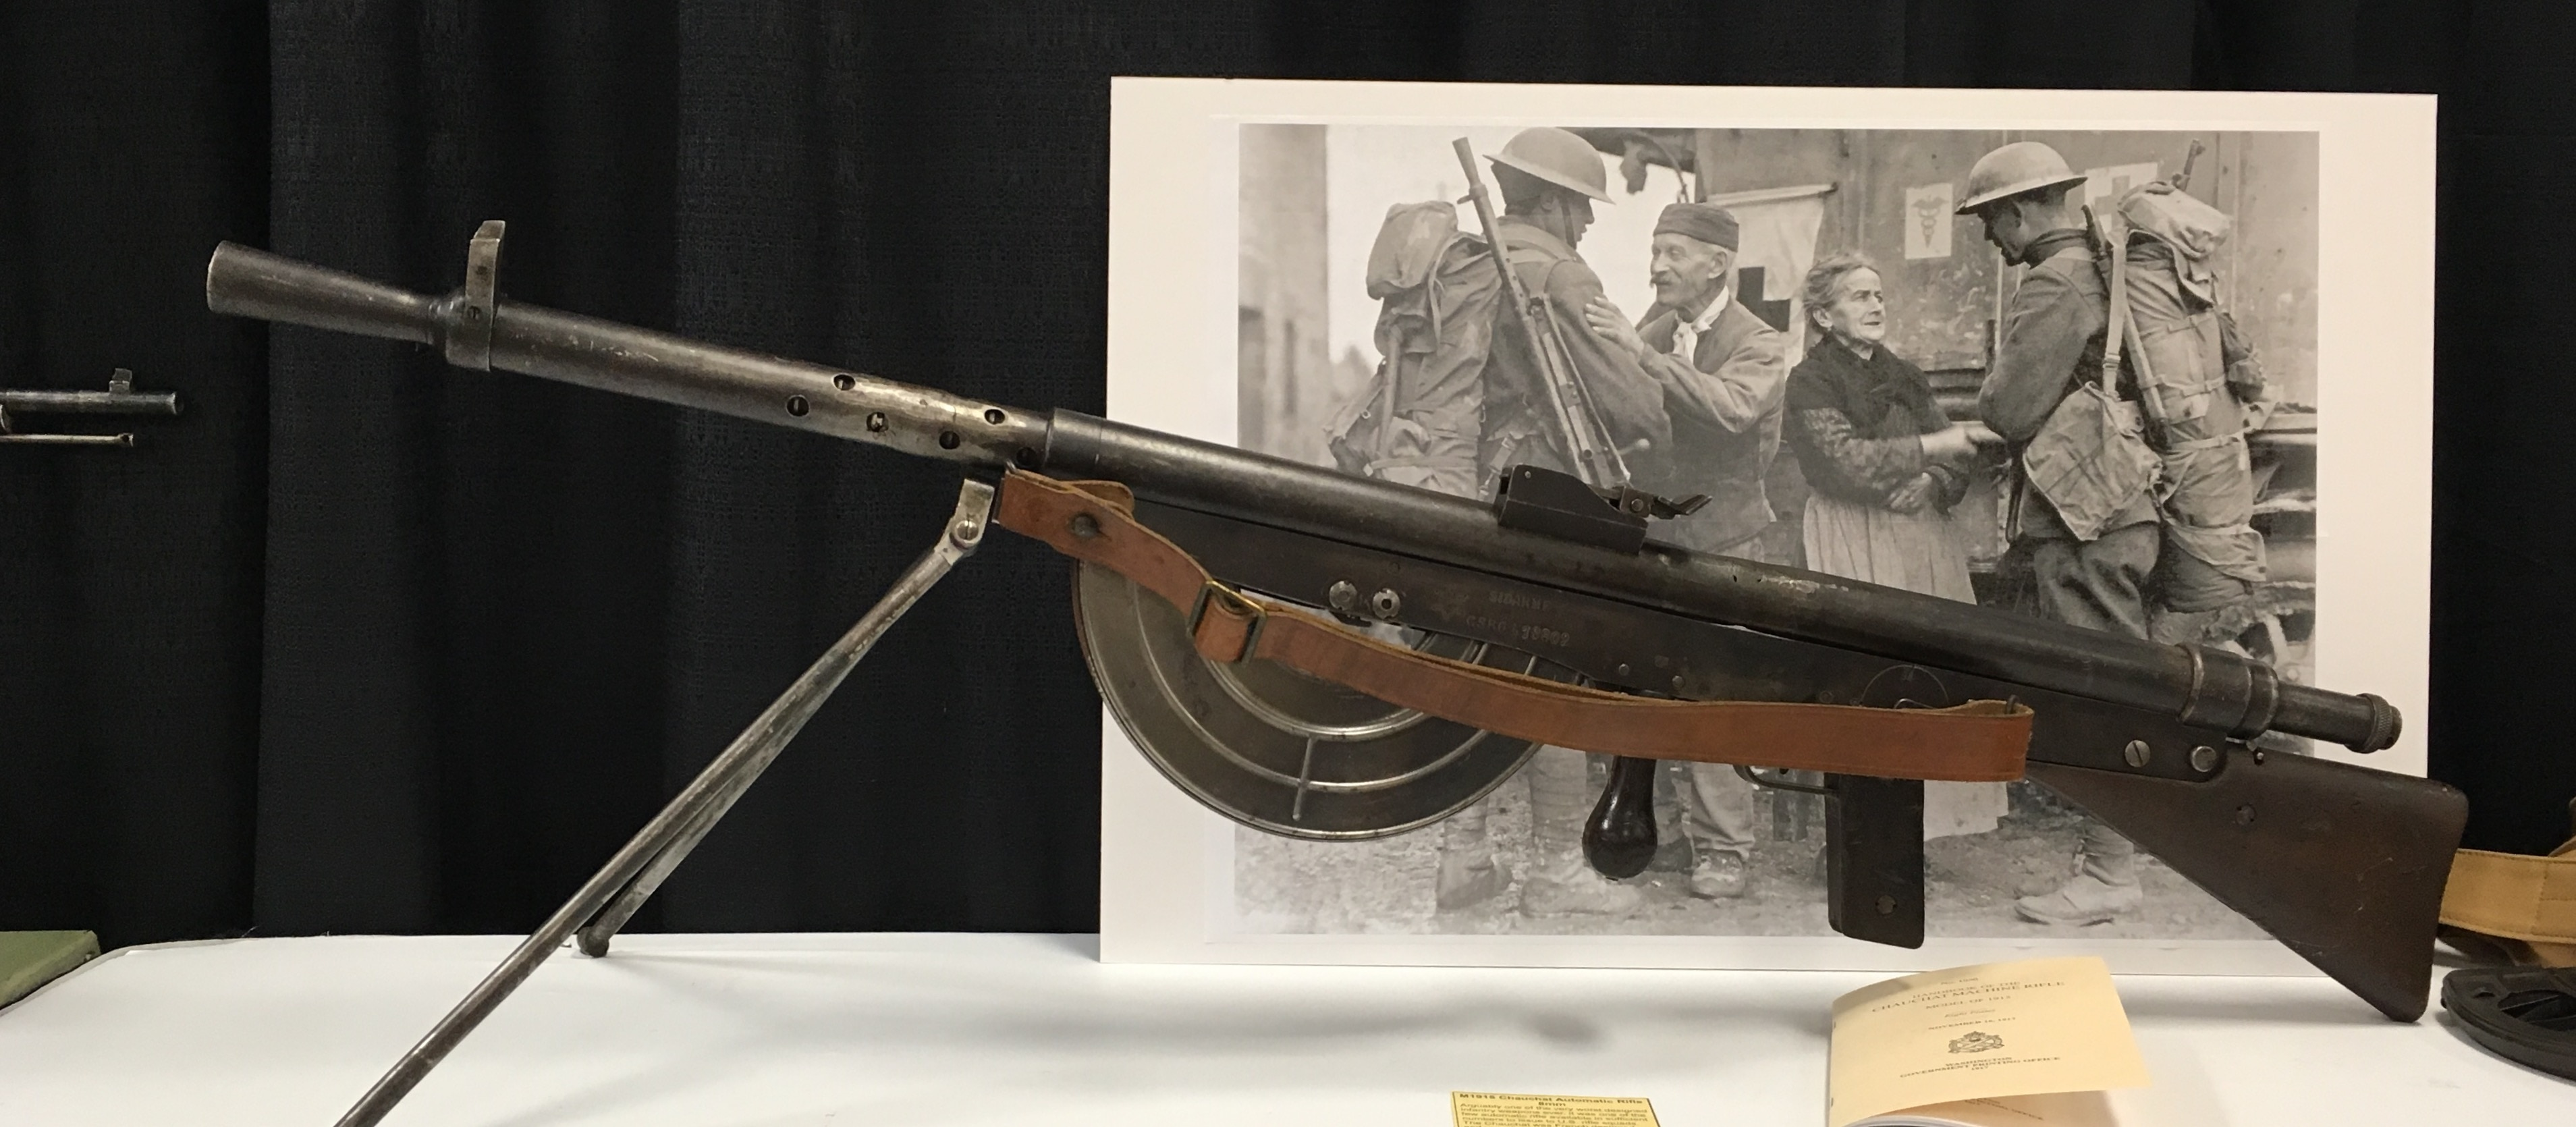 The M1915 Chauchat Automatic Rifle